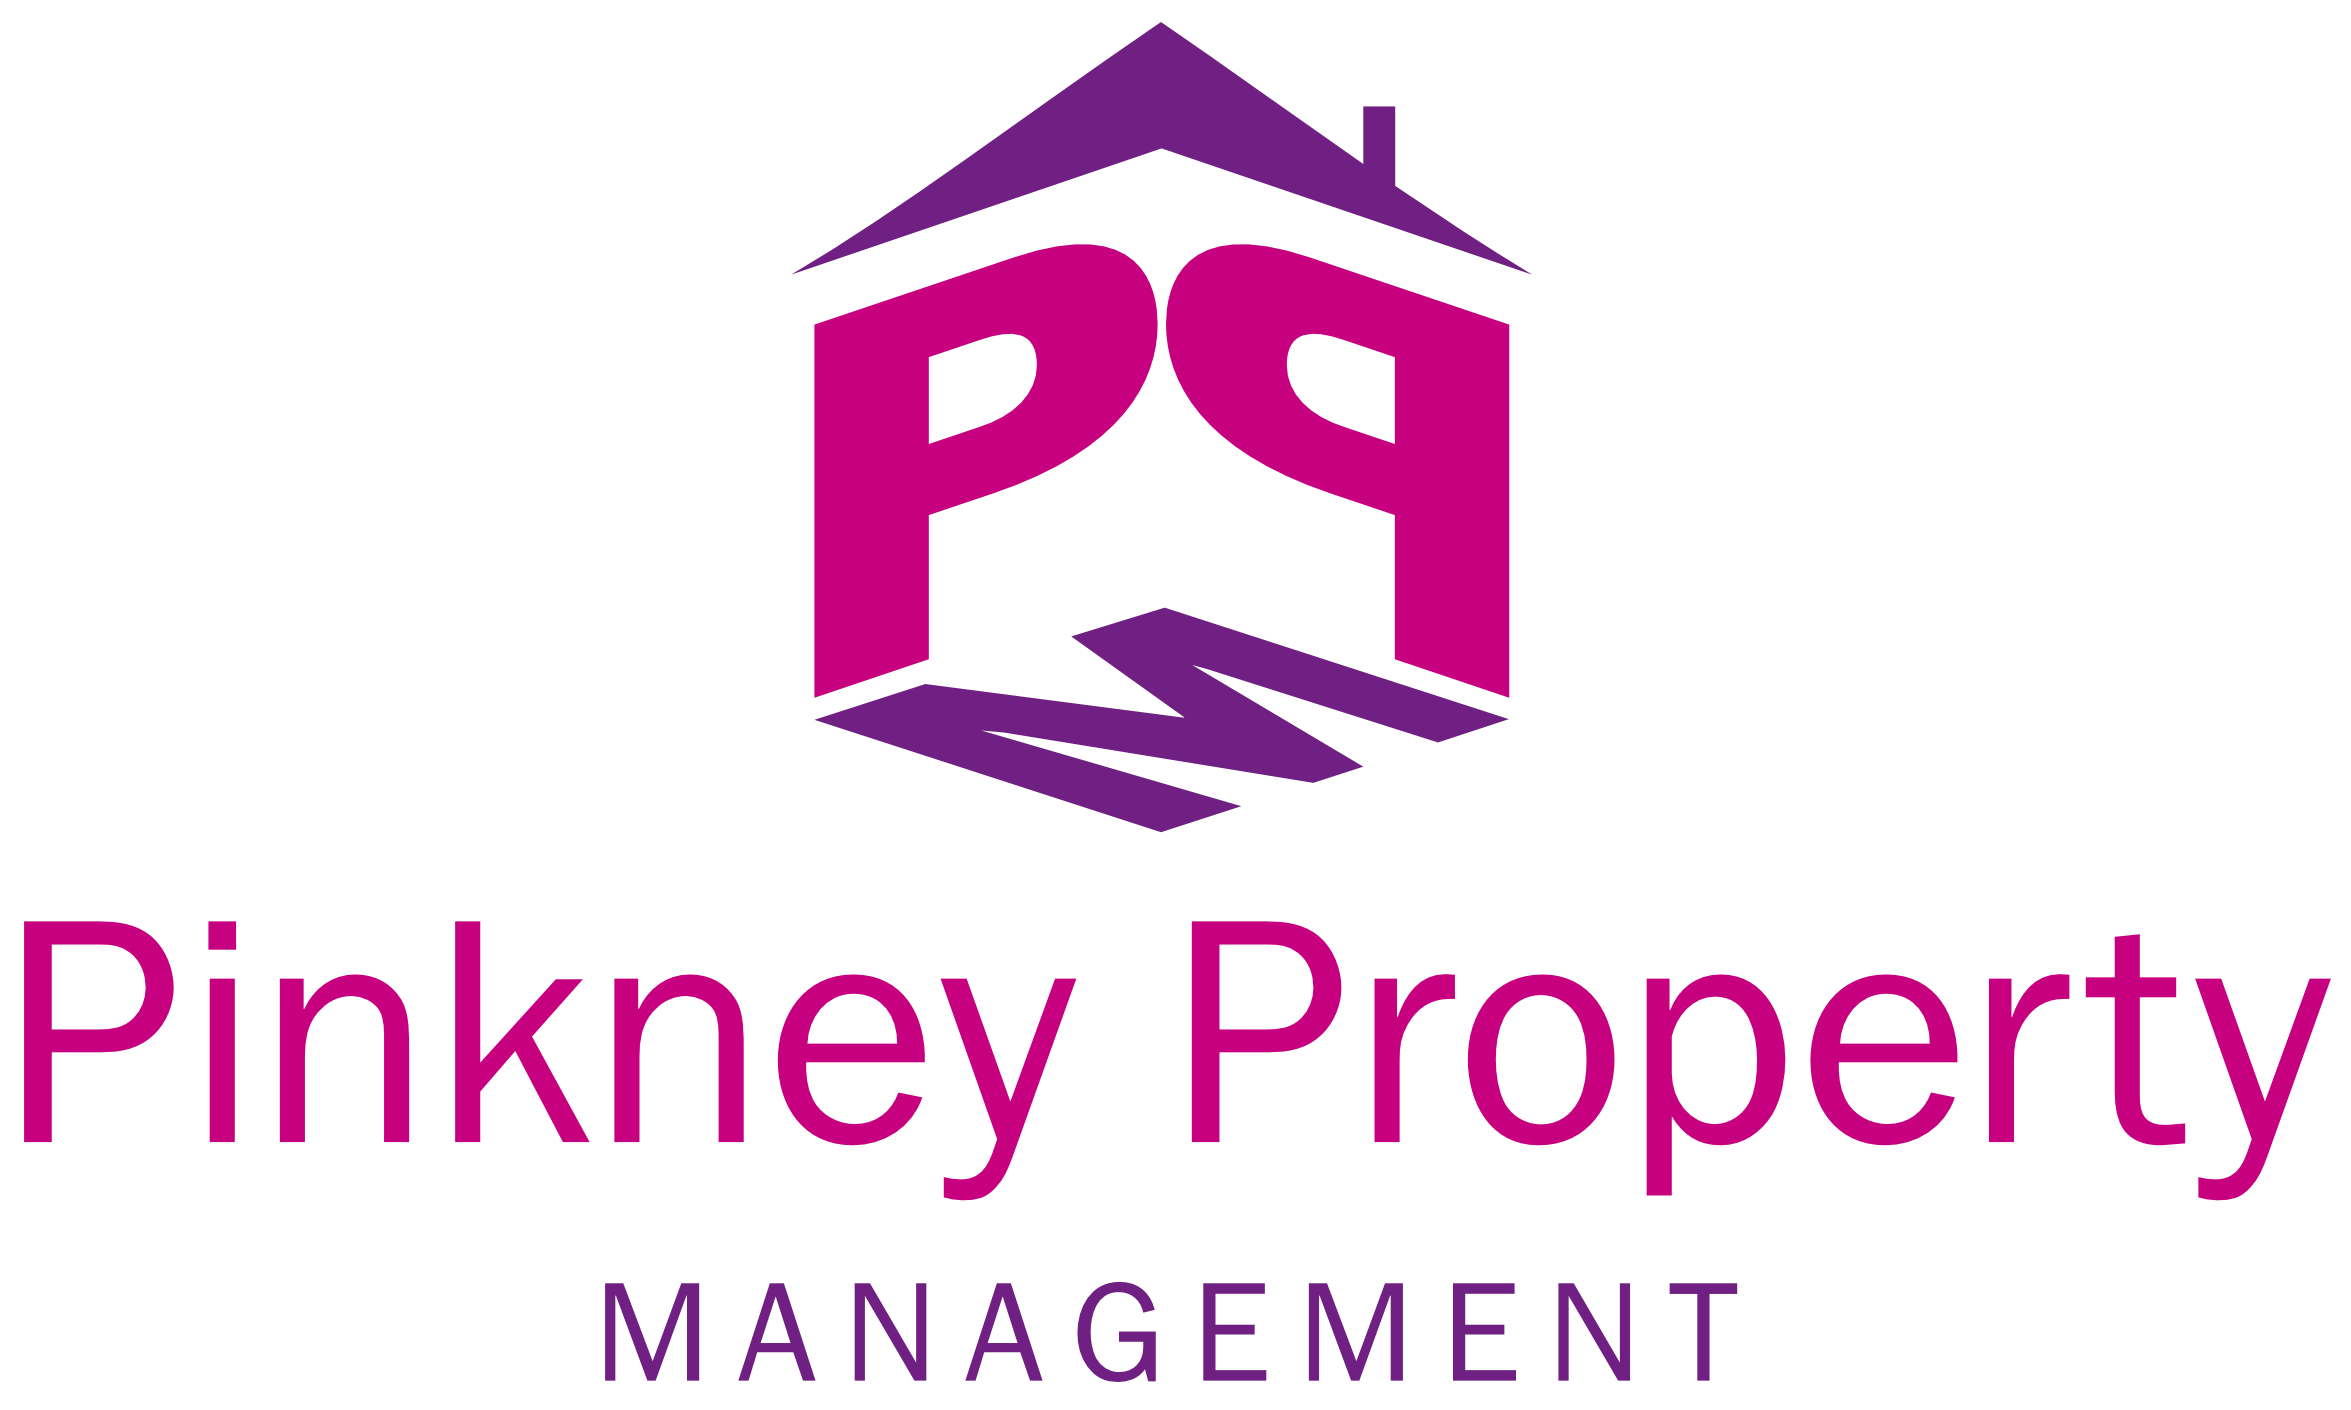 Pinkney Property Management